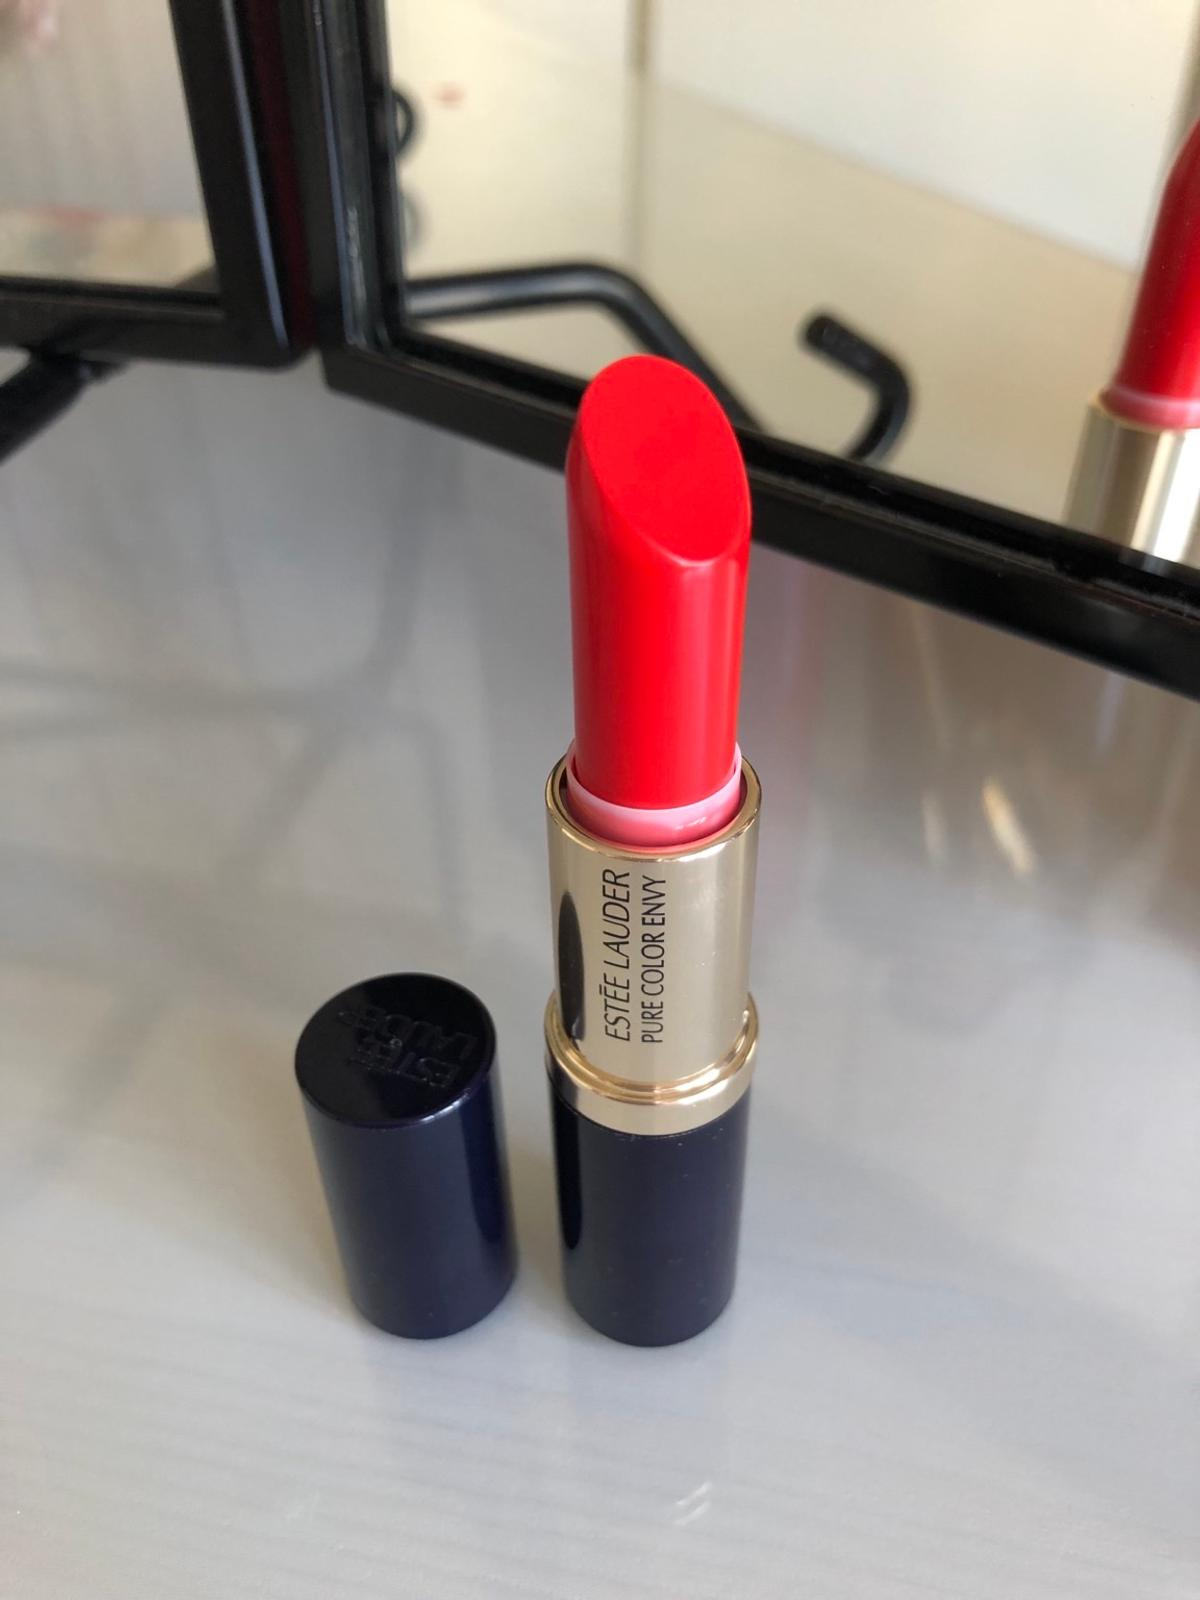 """Brand new Estée Lauder Pure Colour Envy Sculpting Lipstick in """"Uninhibited""""  Perfect condition - completely unused  Bundle discount for more than items. Happy to combine postage. Check out my other items for sale.  Postage via 2nd class Royal Mail  Away Aug 6th - 9th - there will be a delay in postage if purchased during this time"""